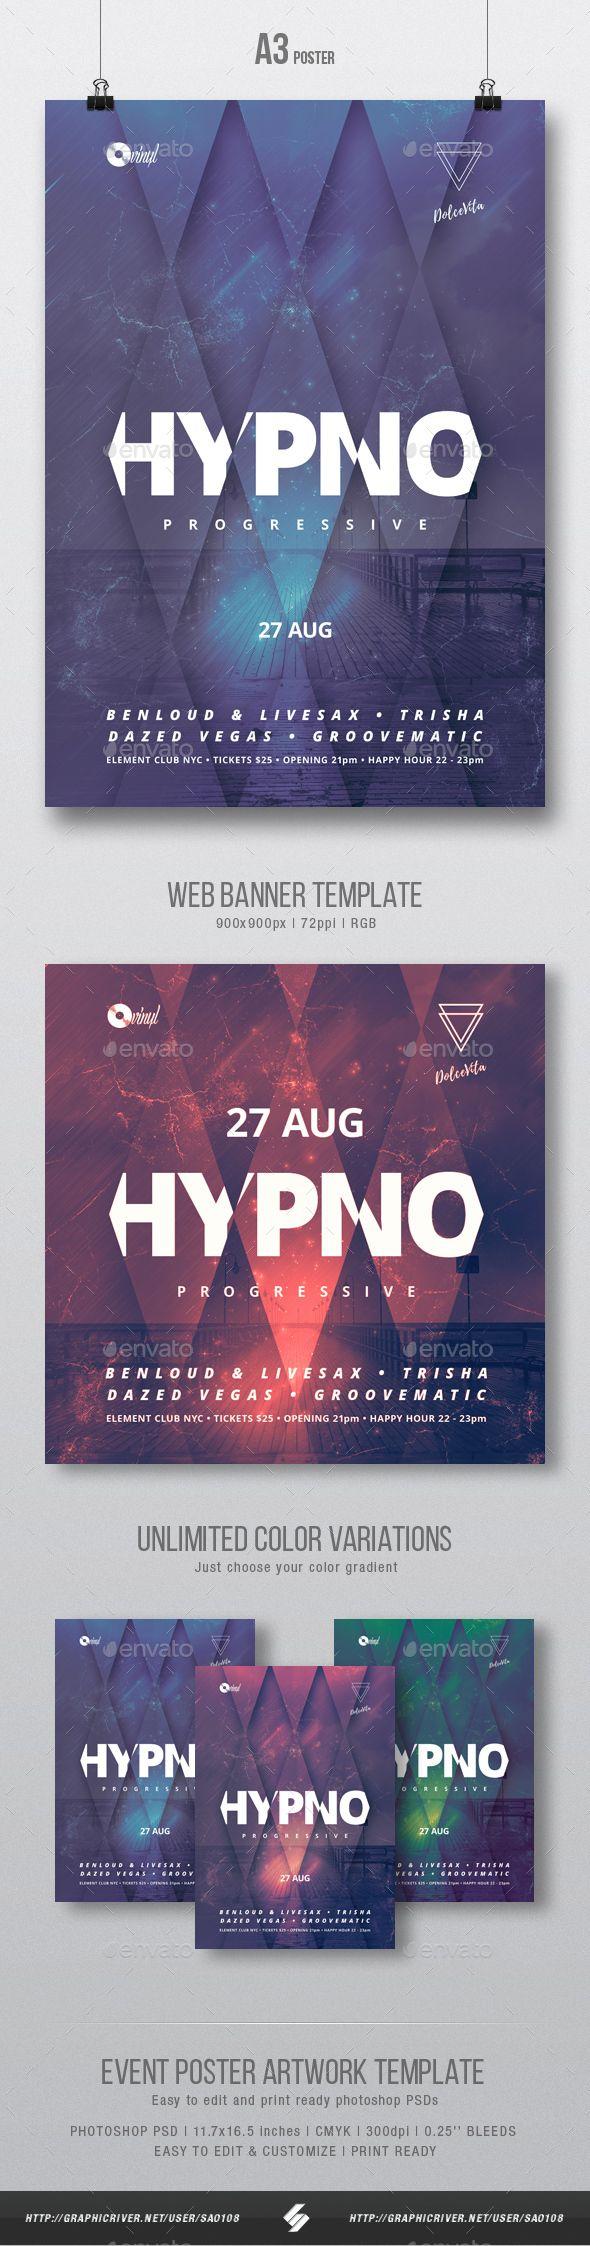 Electronic music event, party flyer template suited for different genres of electronic music like minimal, techno, techhouse, progressive, dubstep, chillstep, drum and bass, electronica, trance, electro, deep house,...etc. Include square web banner template for instagram, faceboook,...etc.